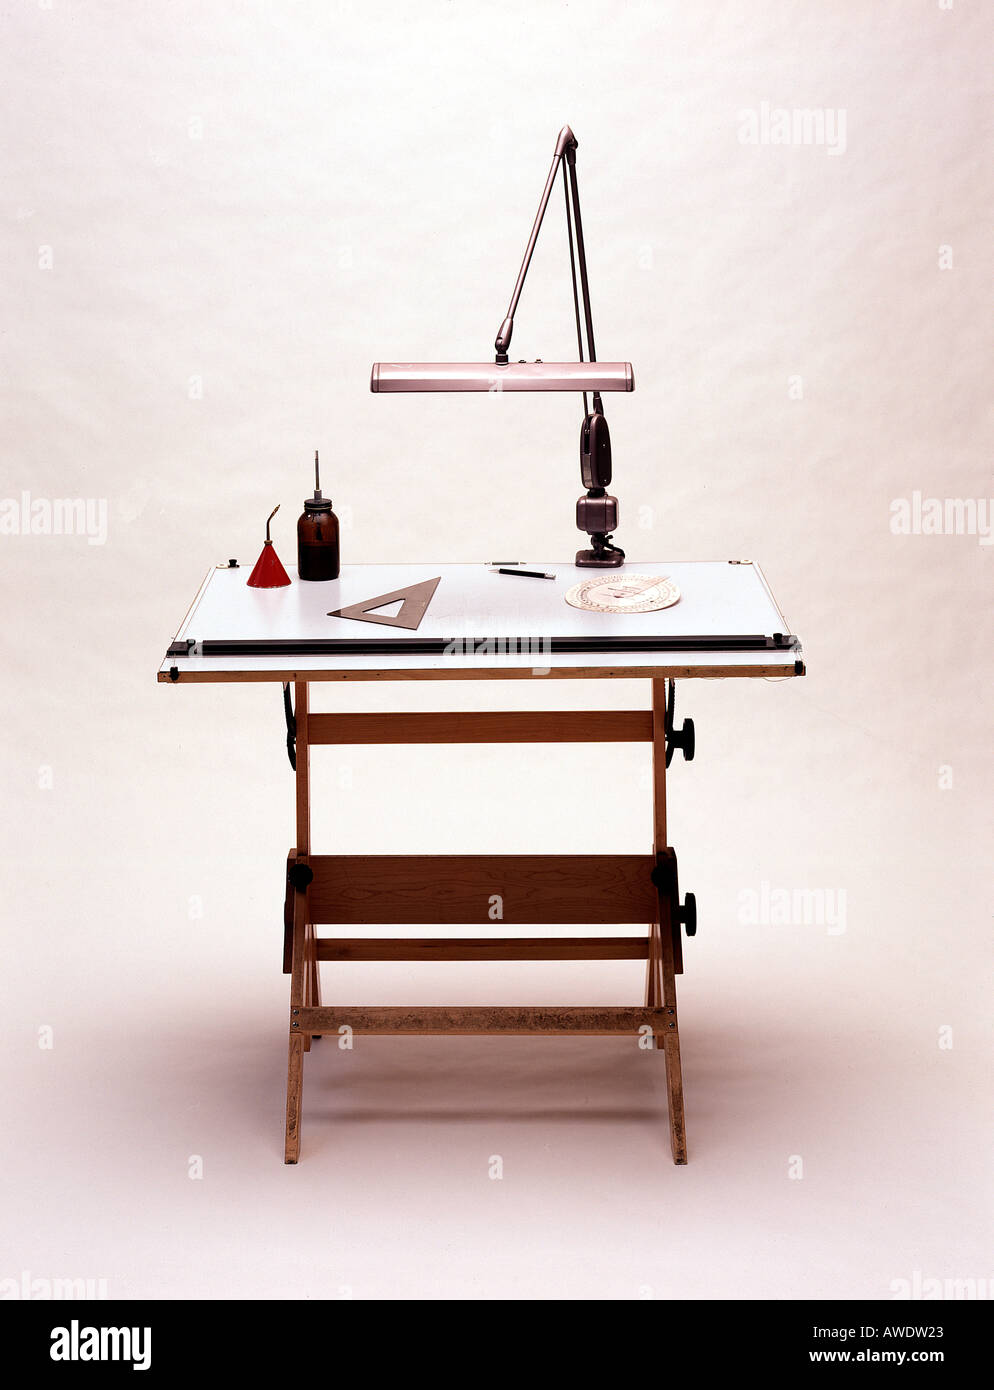 Drafting draftsman architect designer engineer work table lamp drafting draftsman architect designer engineer work table lamp tools triangle graphic arts desk lamp aloadofball Image collections